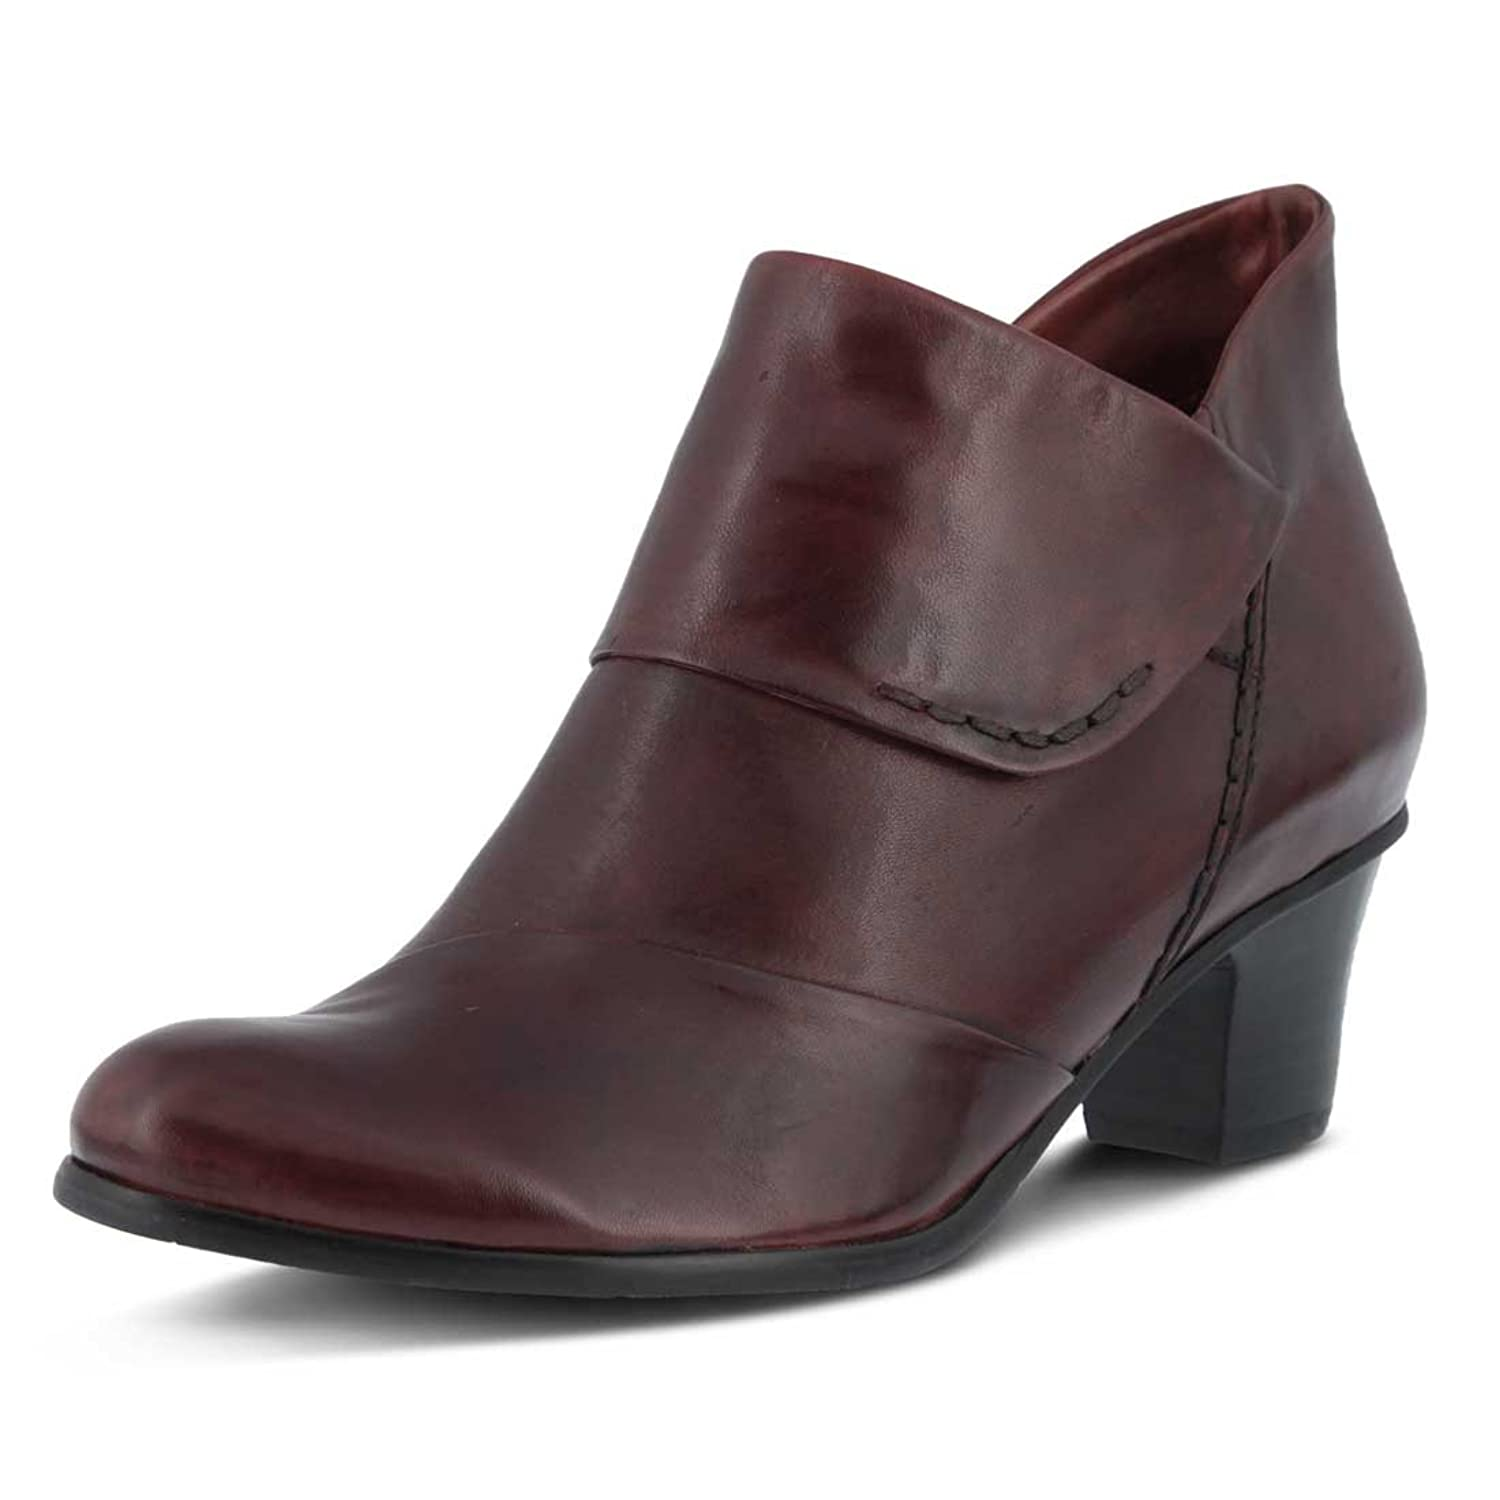 Spring Step Women's Azzuro Ankle Bootie